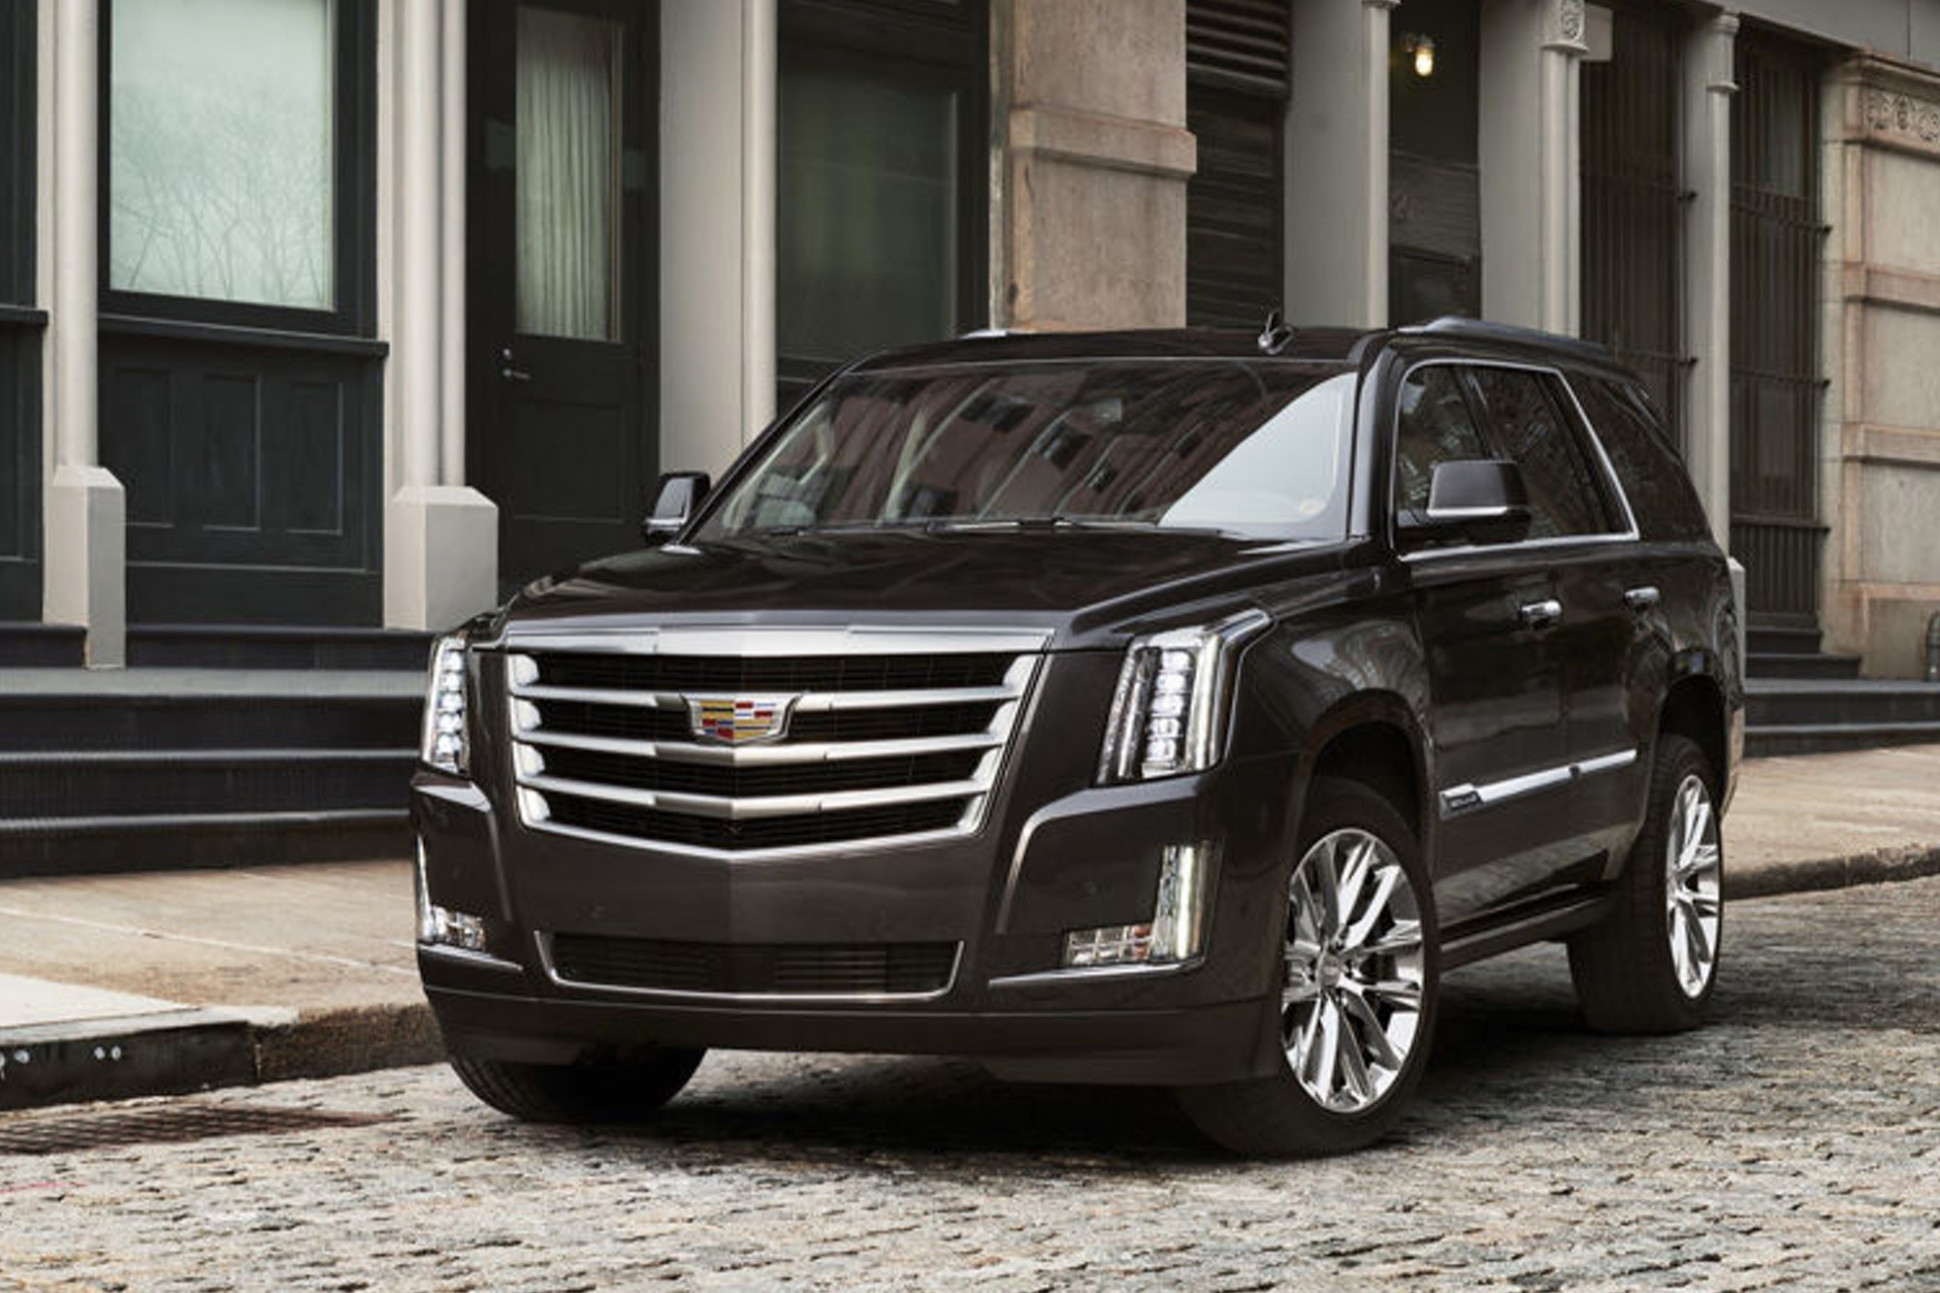 10 Cadillac Escalade To See A $10,10 Price Increase